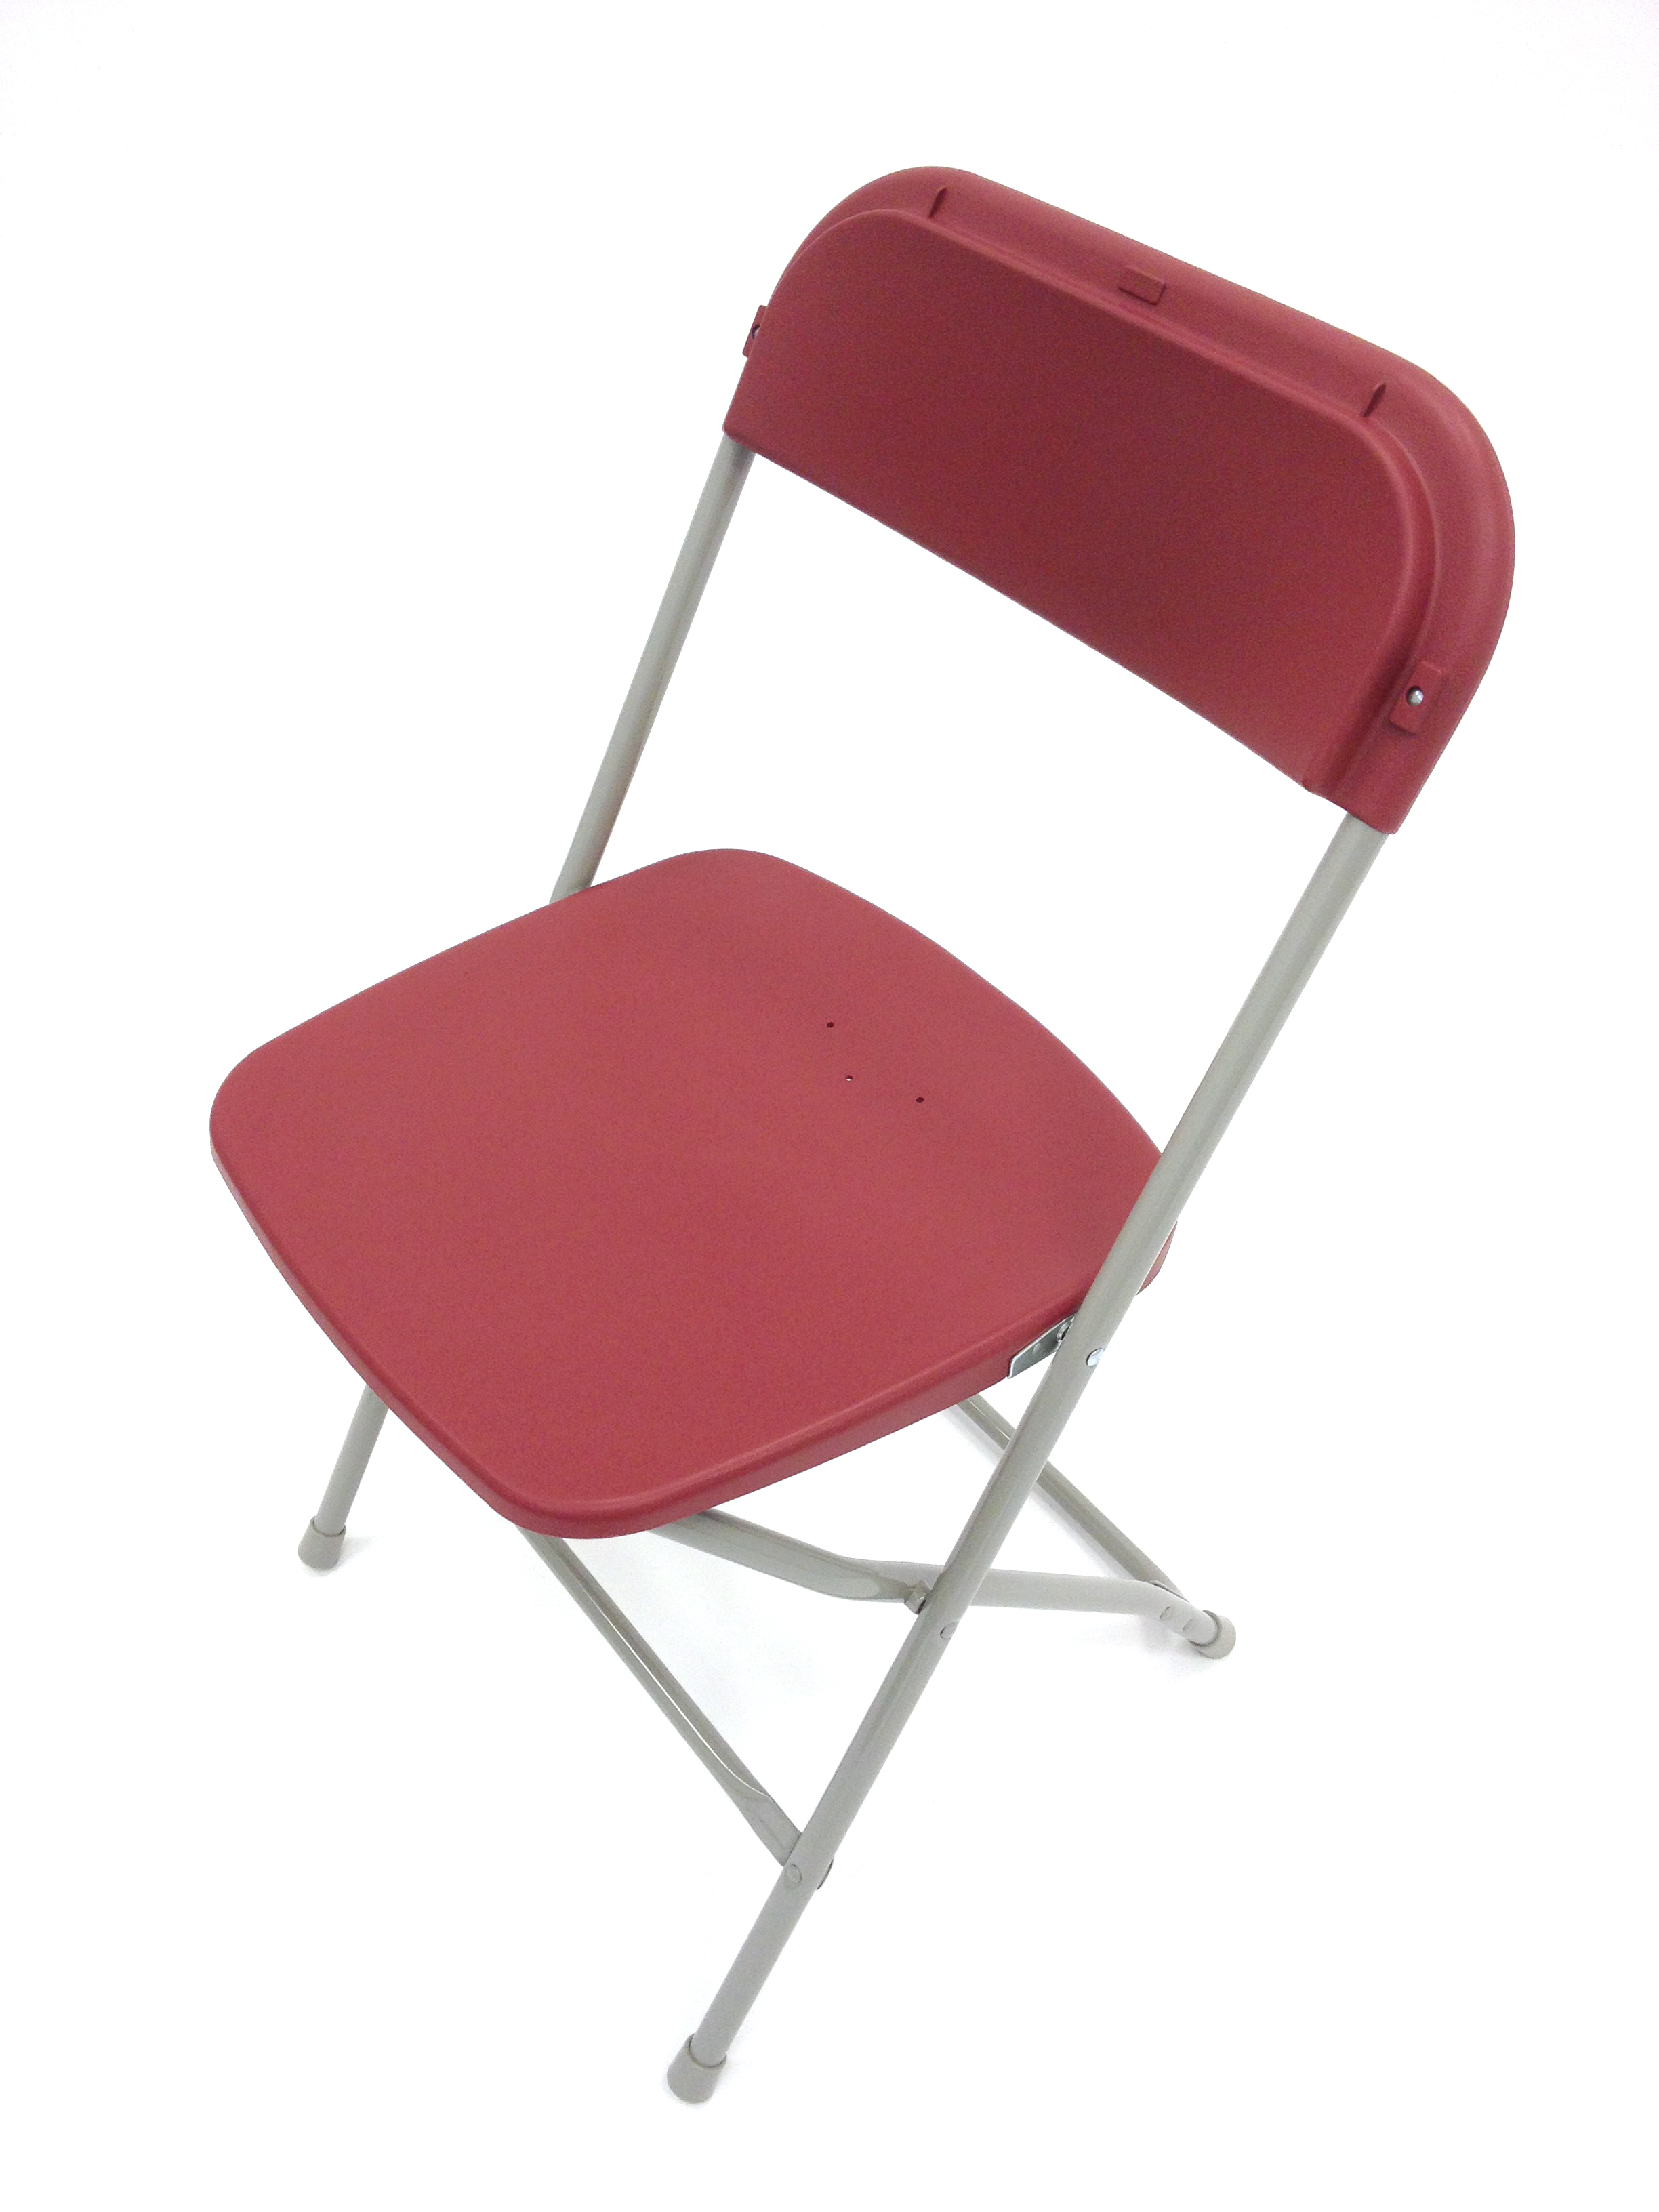 Red Folding Chair - Event & Exhibition Venues, School Halls - BE Furniture Sales